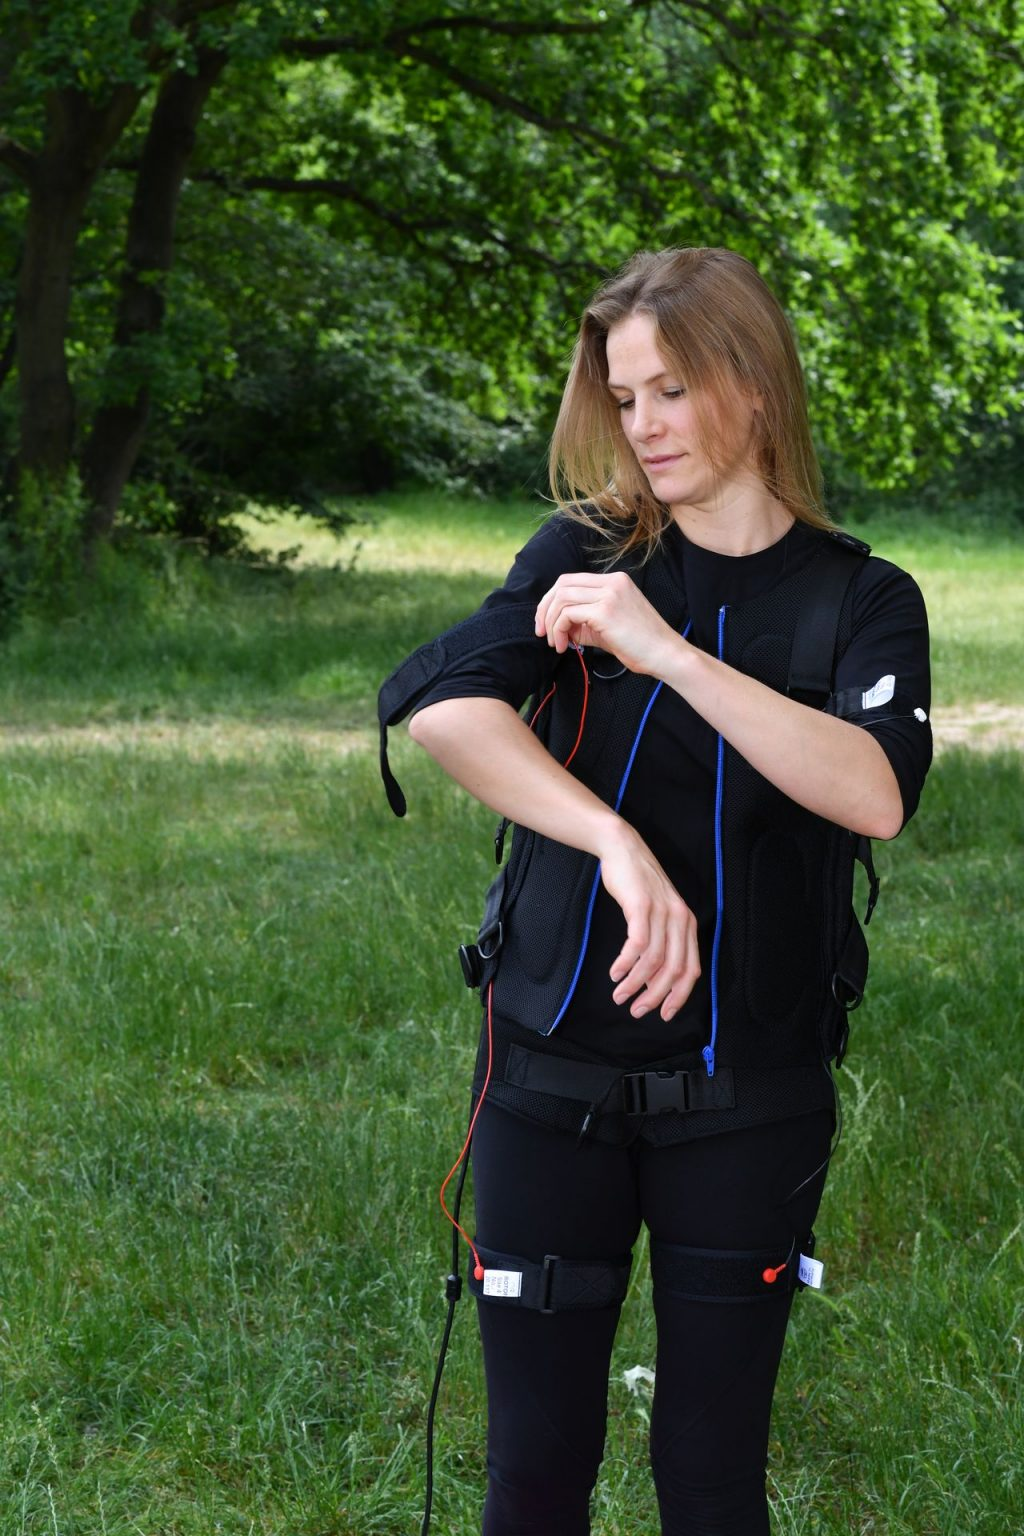 Laura Preiss Is Training in the Park (8 Photos)